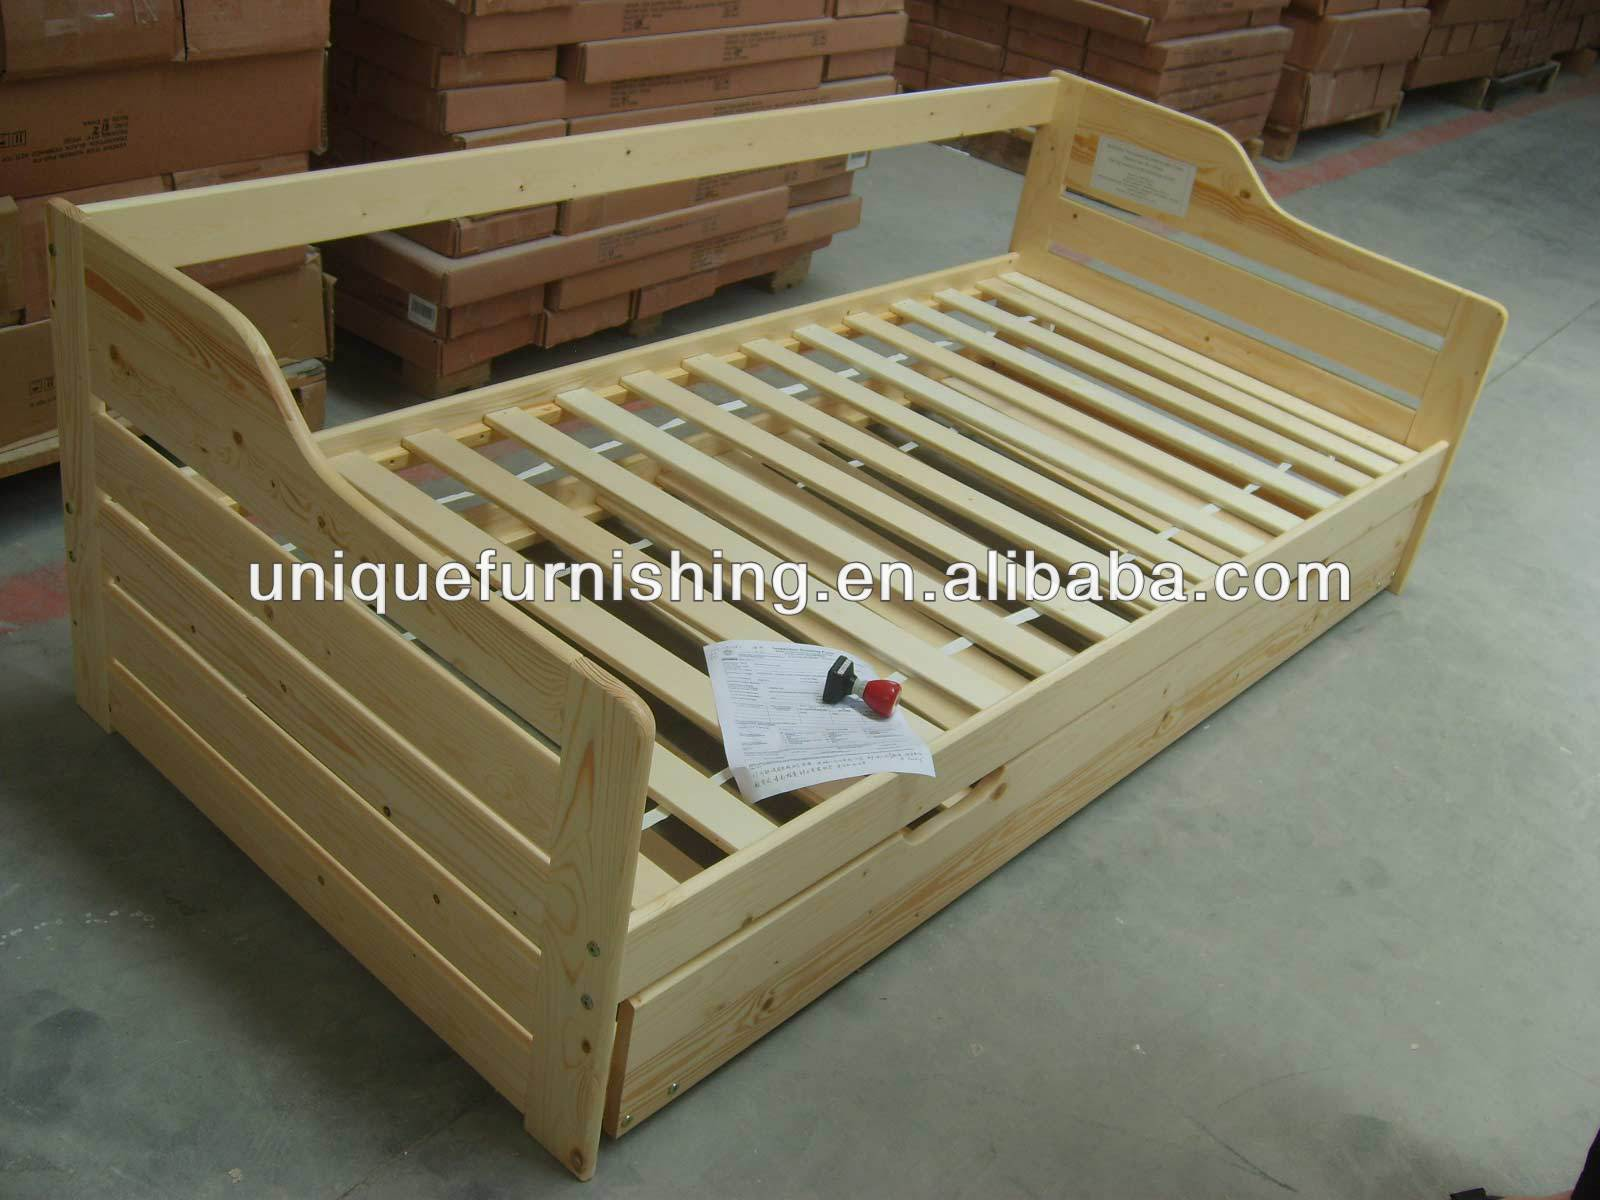 Wood Bed Designs : Solid Pine Wood Box Bed Designs For Sofa Bed - Buy Wood Box Bed ...